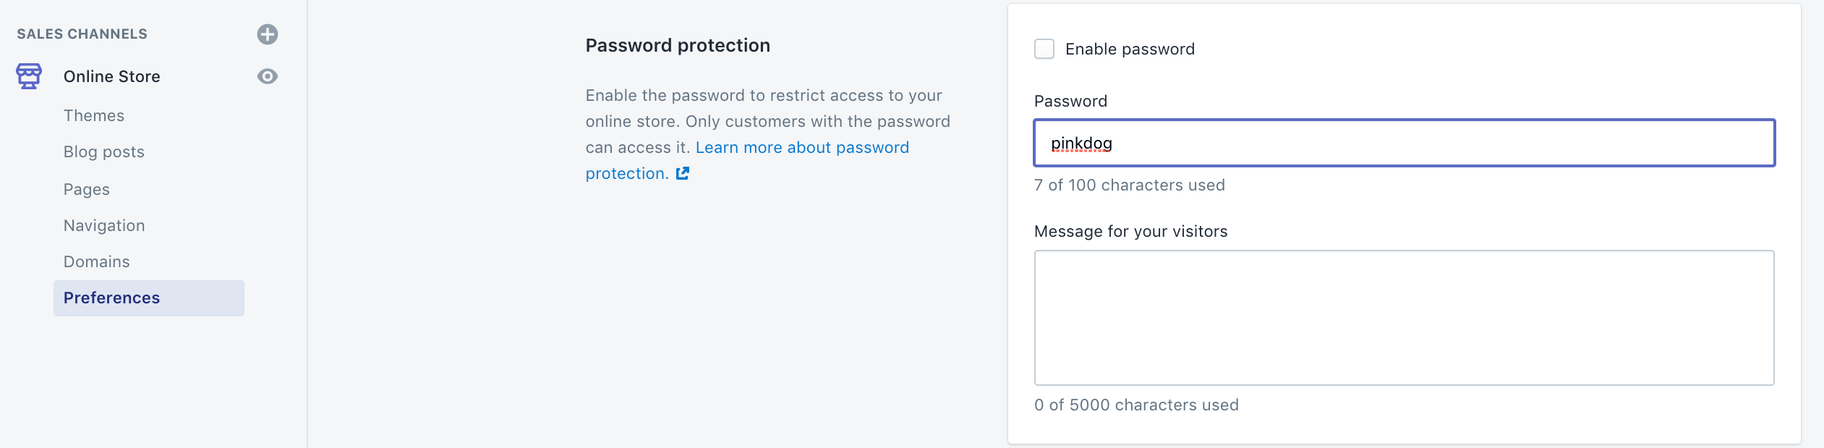 Remove password protection Shopify